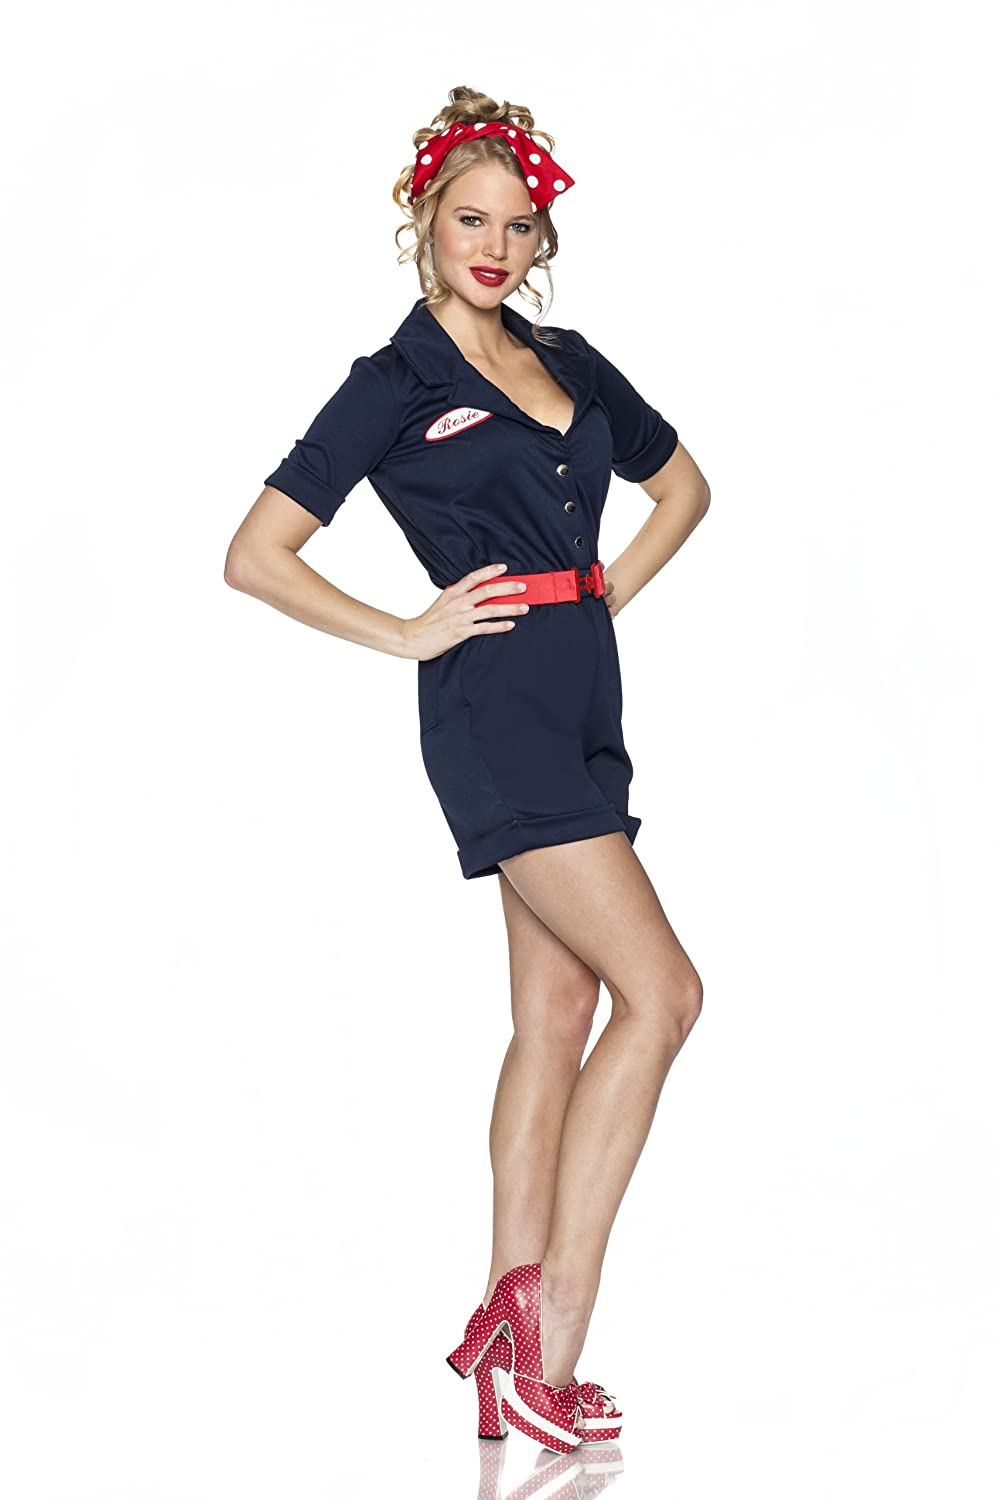 Rosie the Riveter Costume & Outfit Ideas Delicious Riveting Rosie Costume $60.96 AT vintagedancer.com